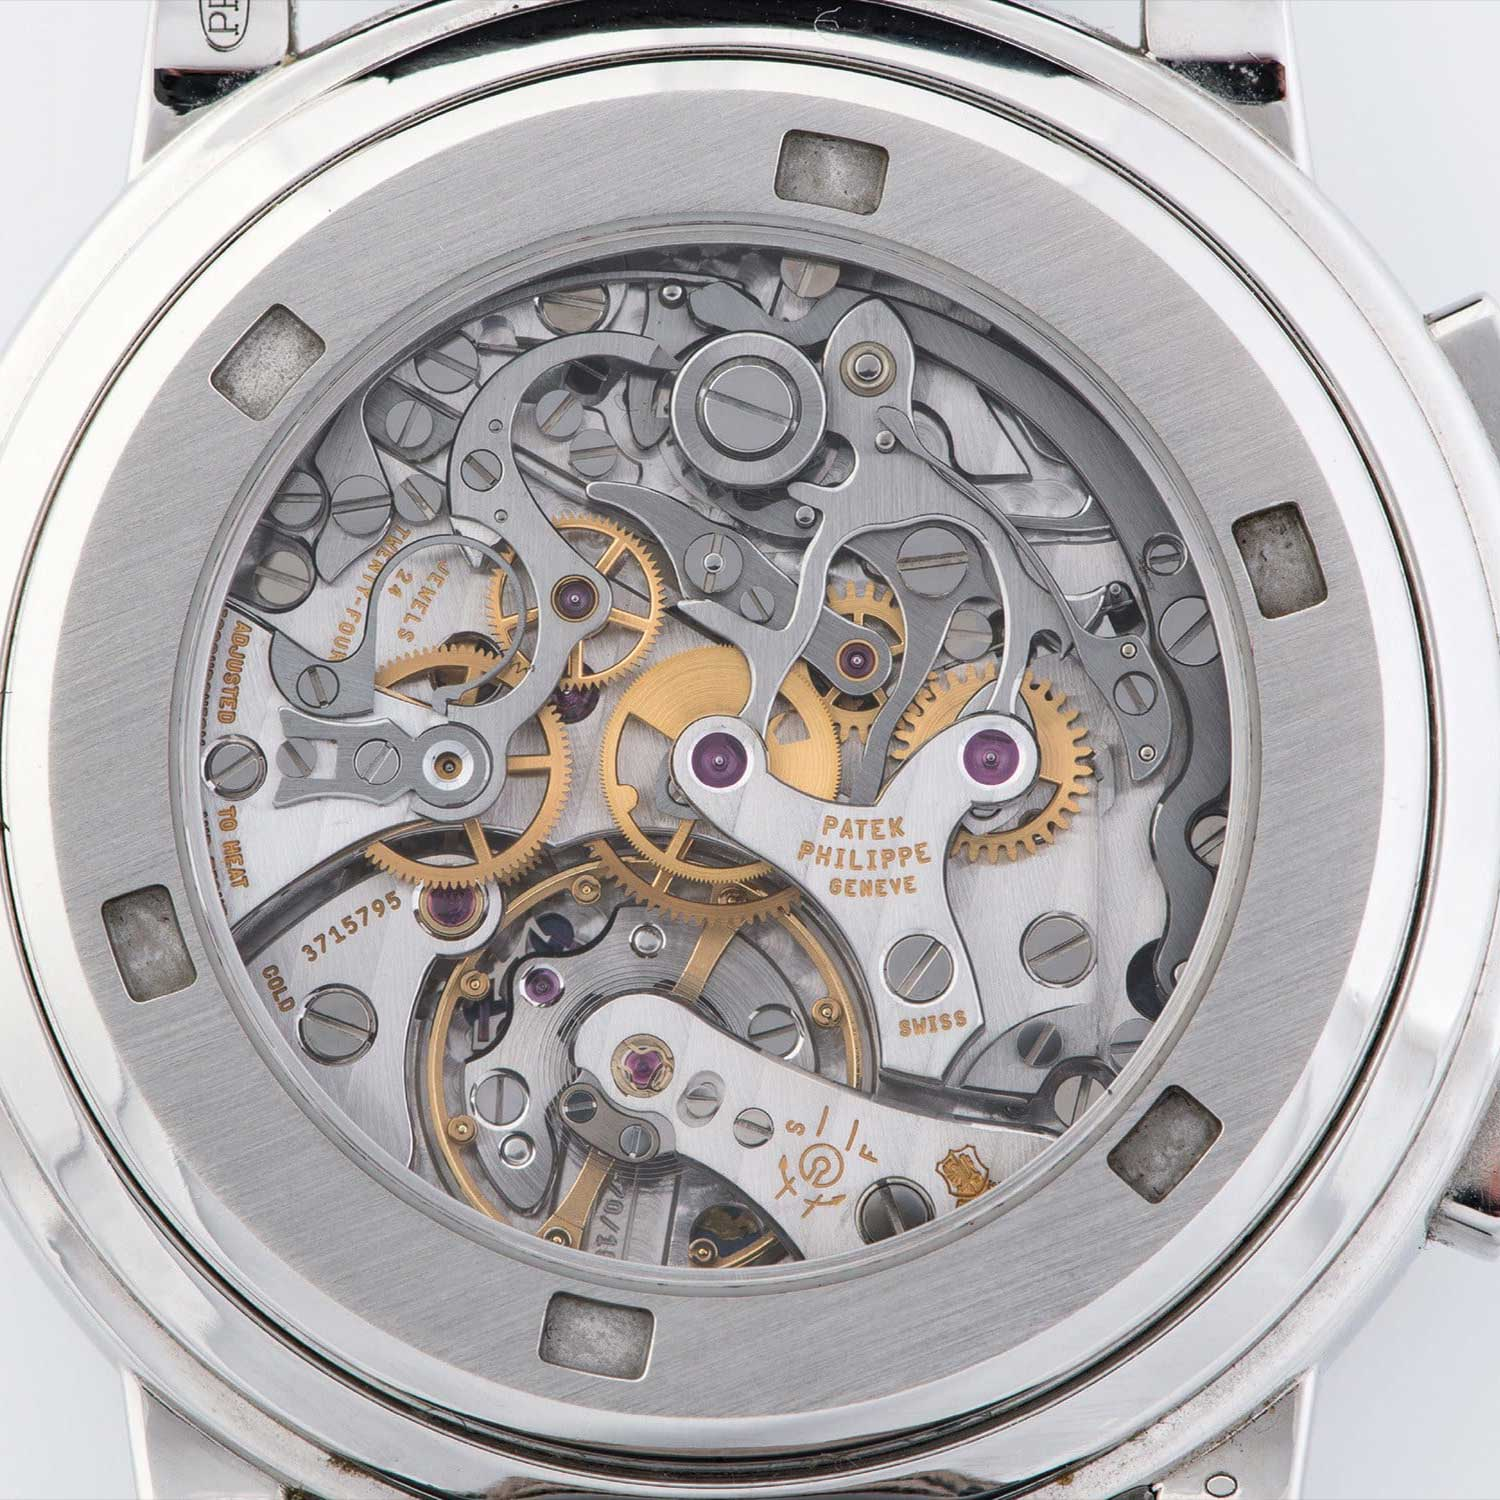 Display caseback of the 5070 showcasing the CH 27-70 within (Image: Phillips.com)